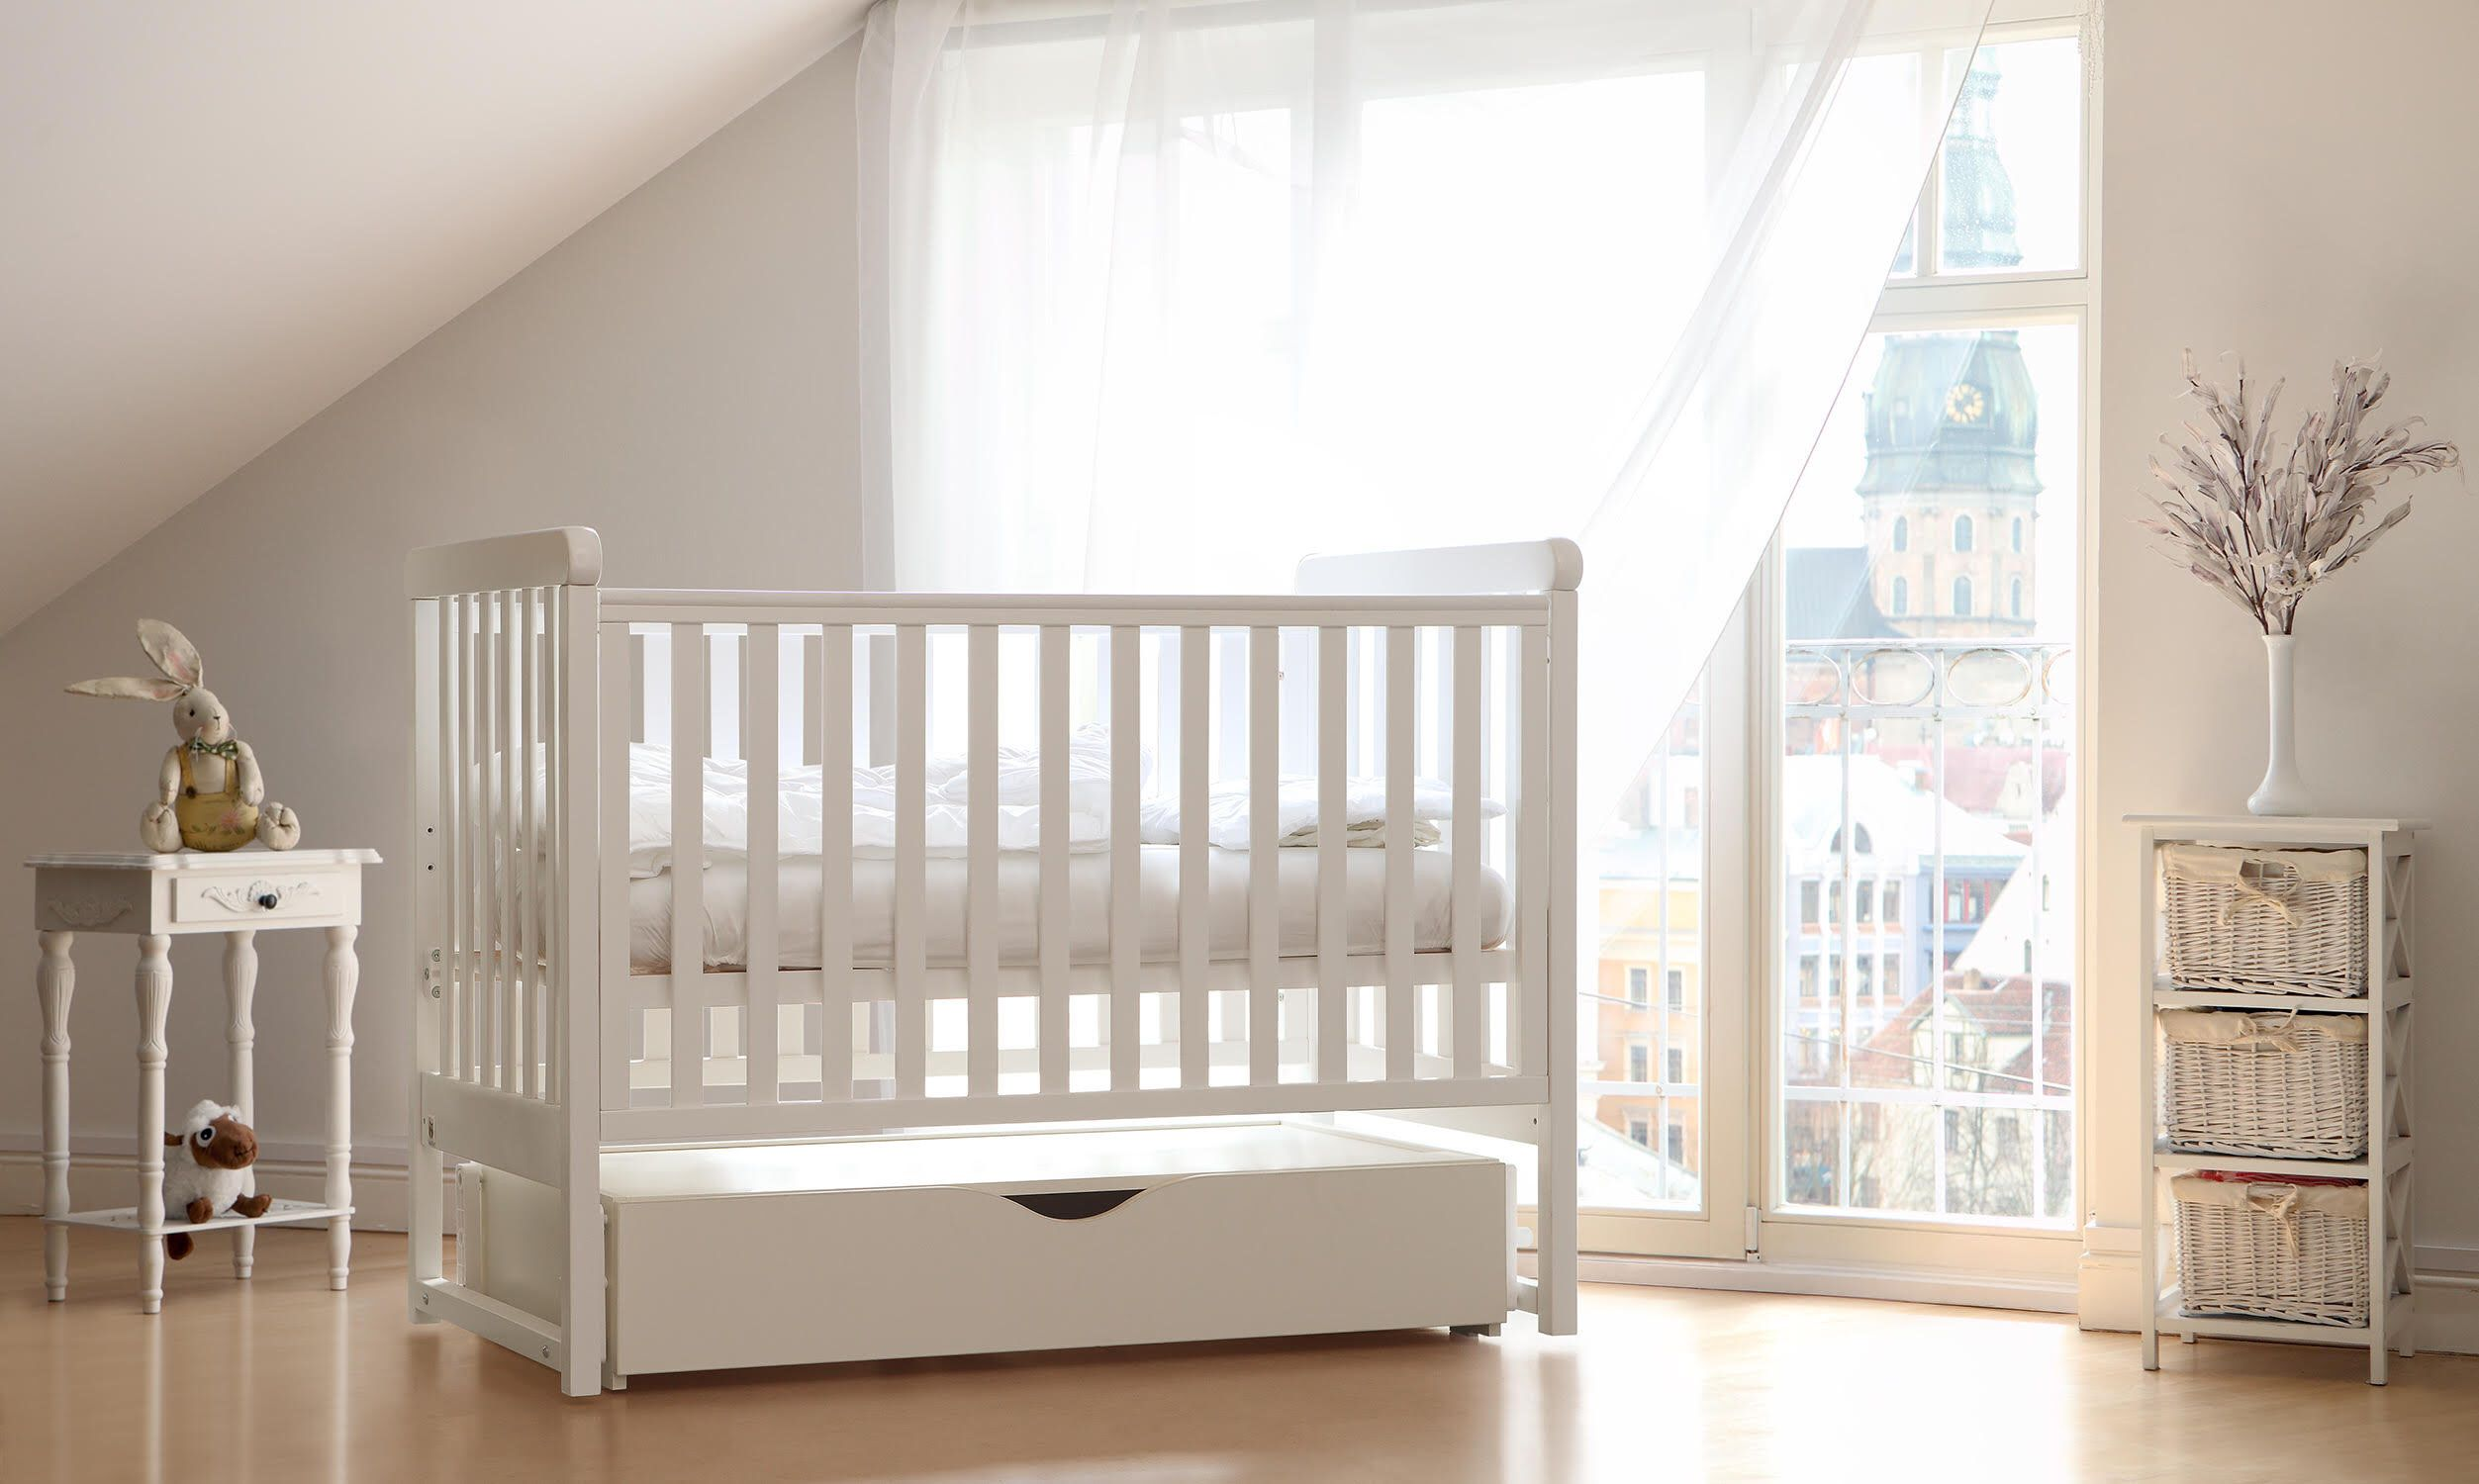 Yappymove Natural Wood Crib That Swings With A Mattress Included Baby Cot Baby Bed Natural Wood Crib Baby Furniture Nursery Wooden Bed Baby Furniture Wood Crib Cribs